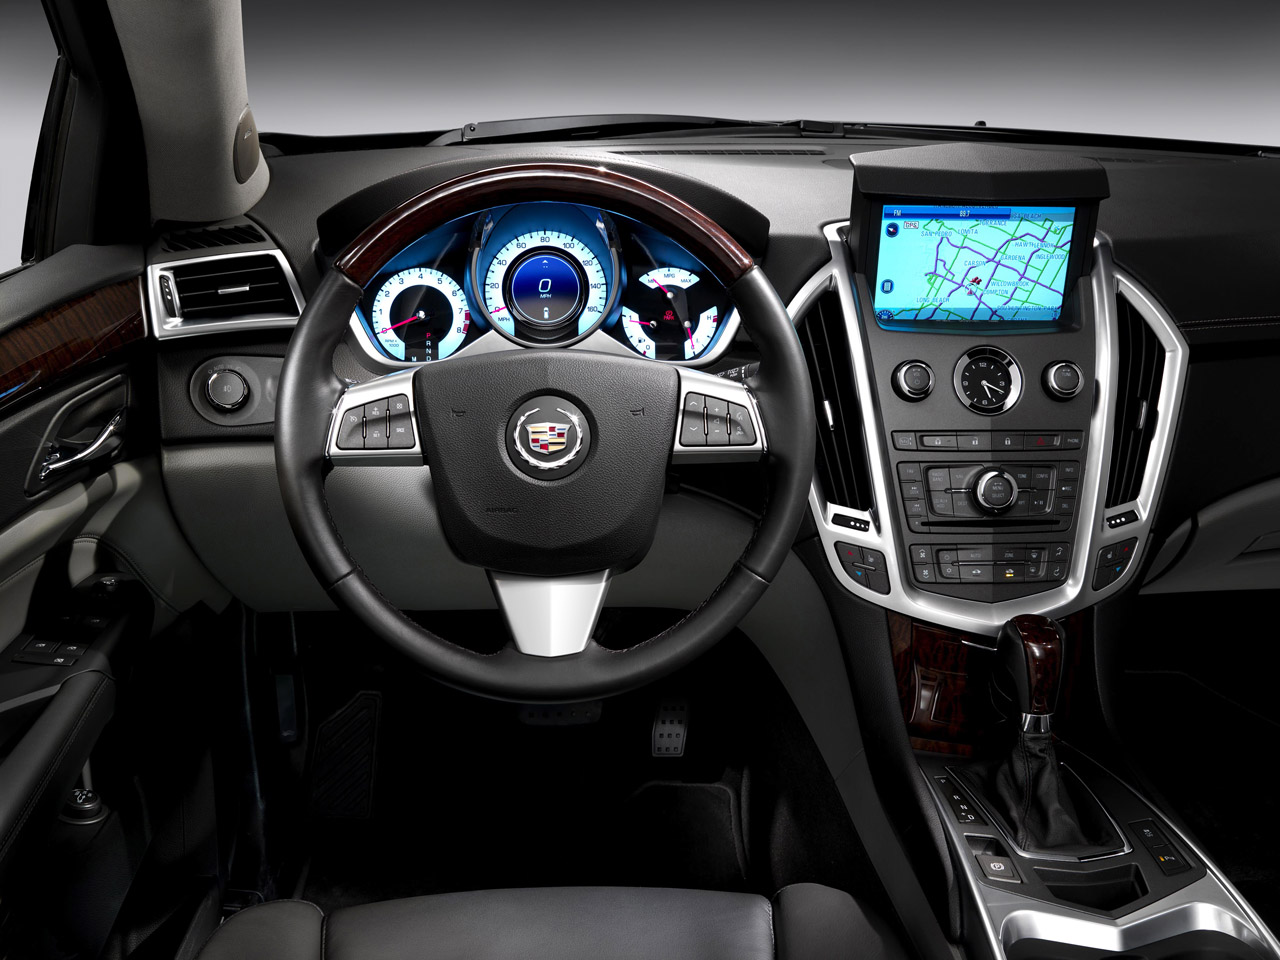 luxury auto cars weight adds stillb cadillac loses view road track test srx video